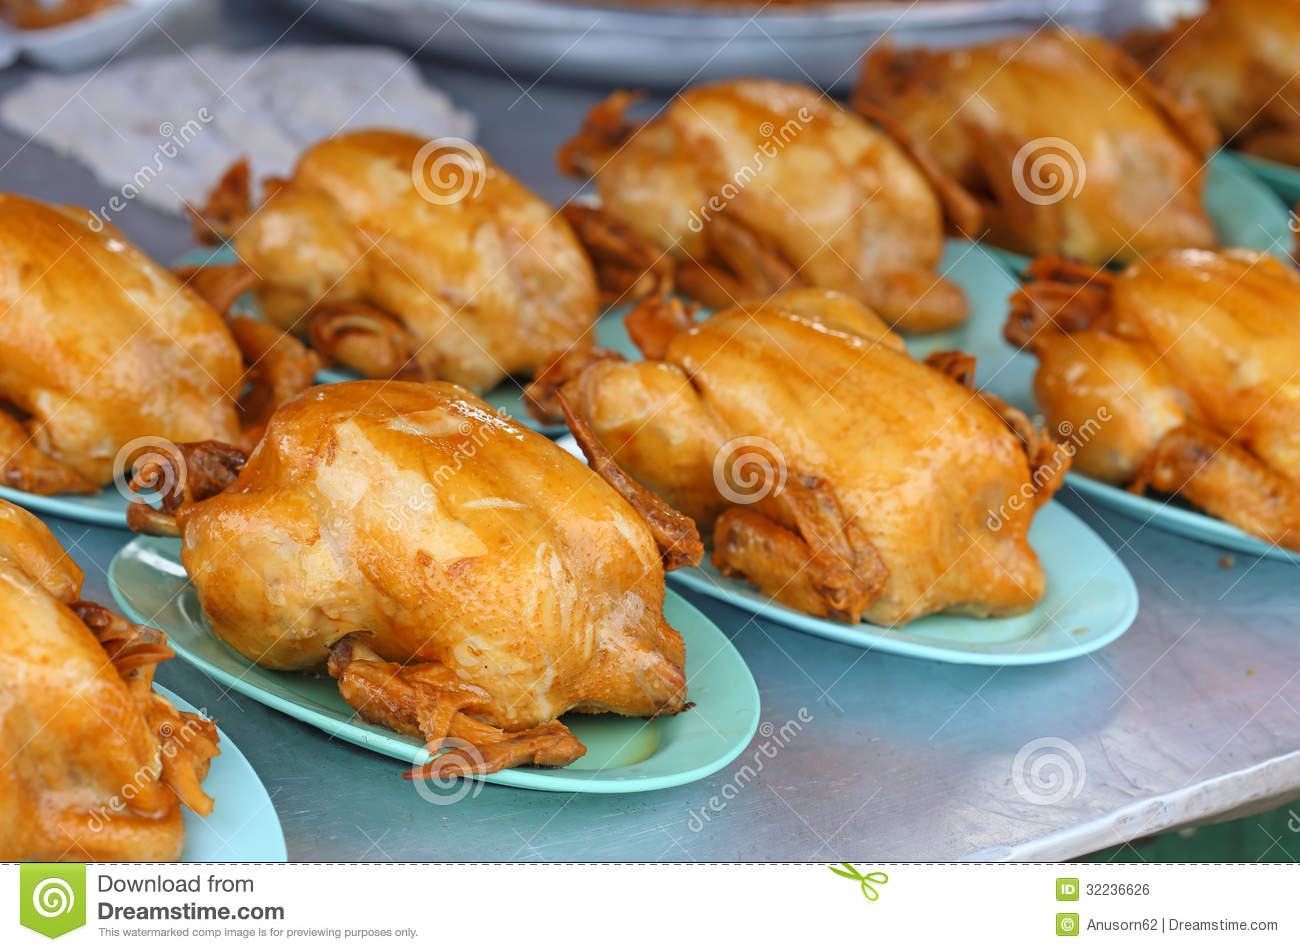 Boil Chicken Sauce Royalty Free Stock Image - Image: 32236626